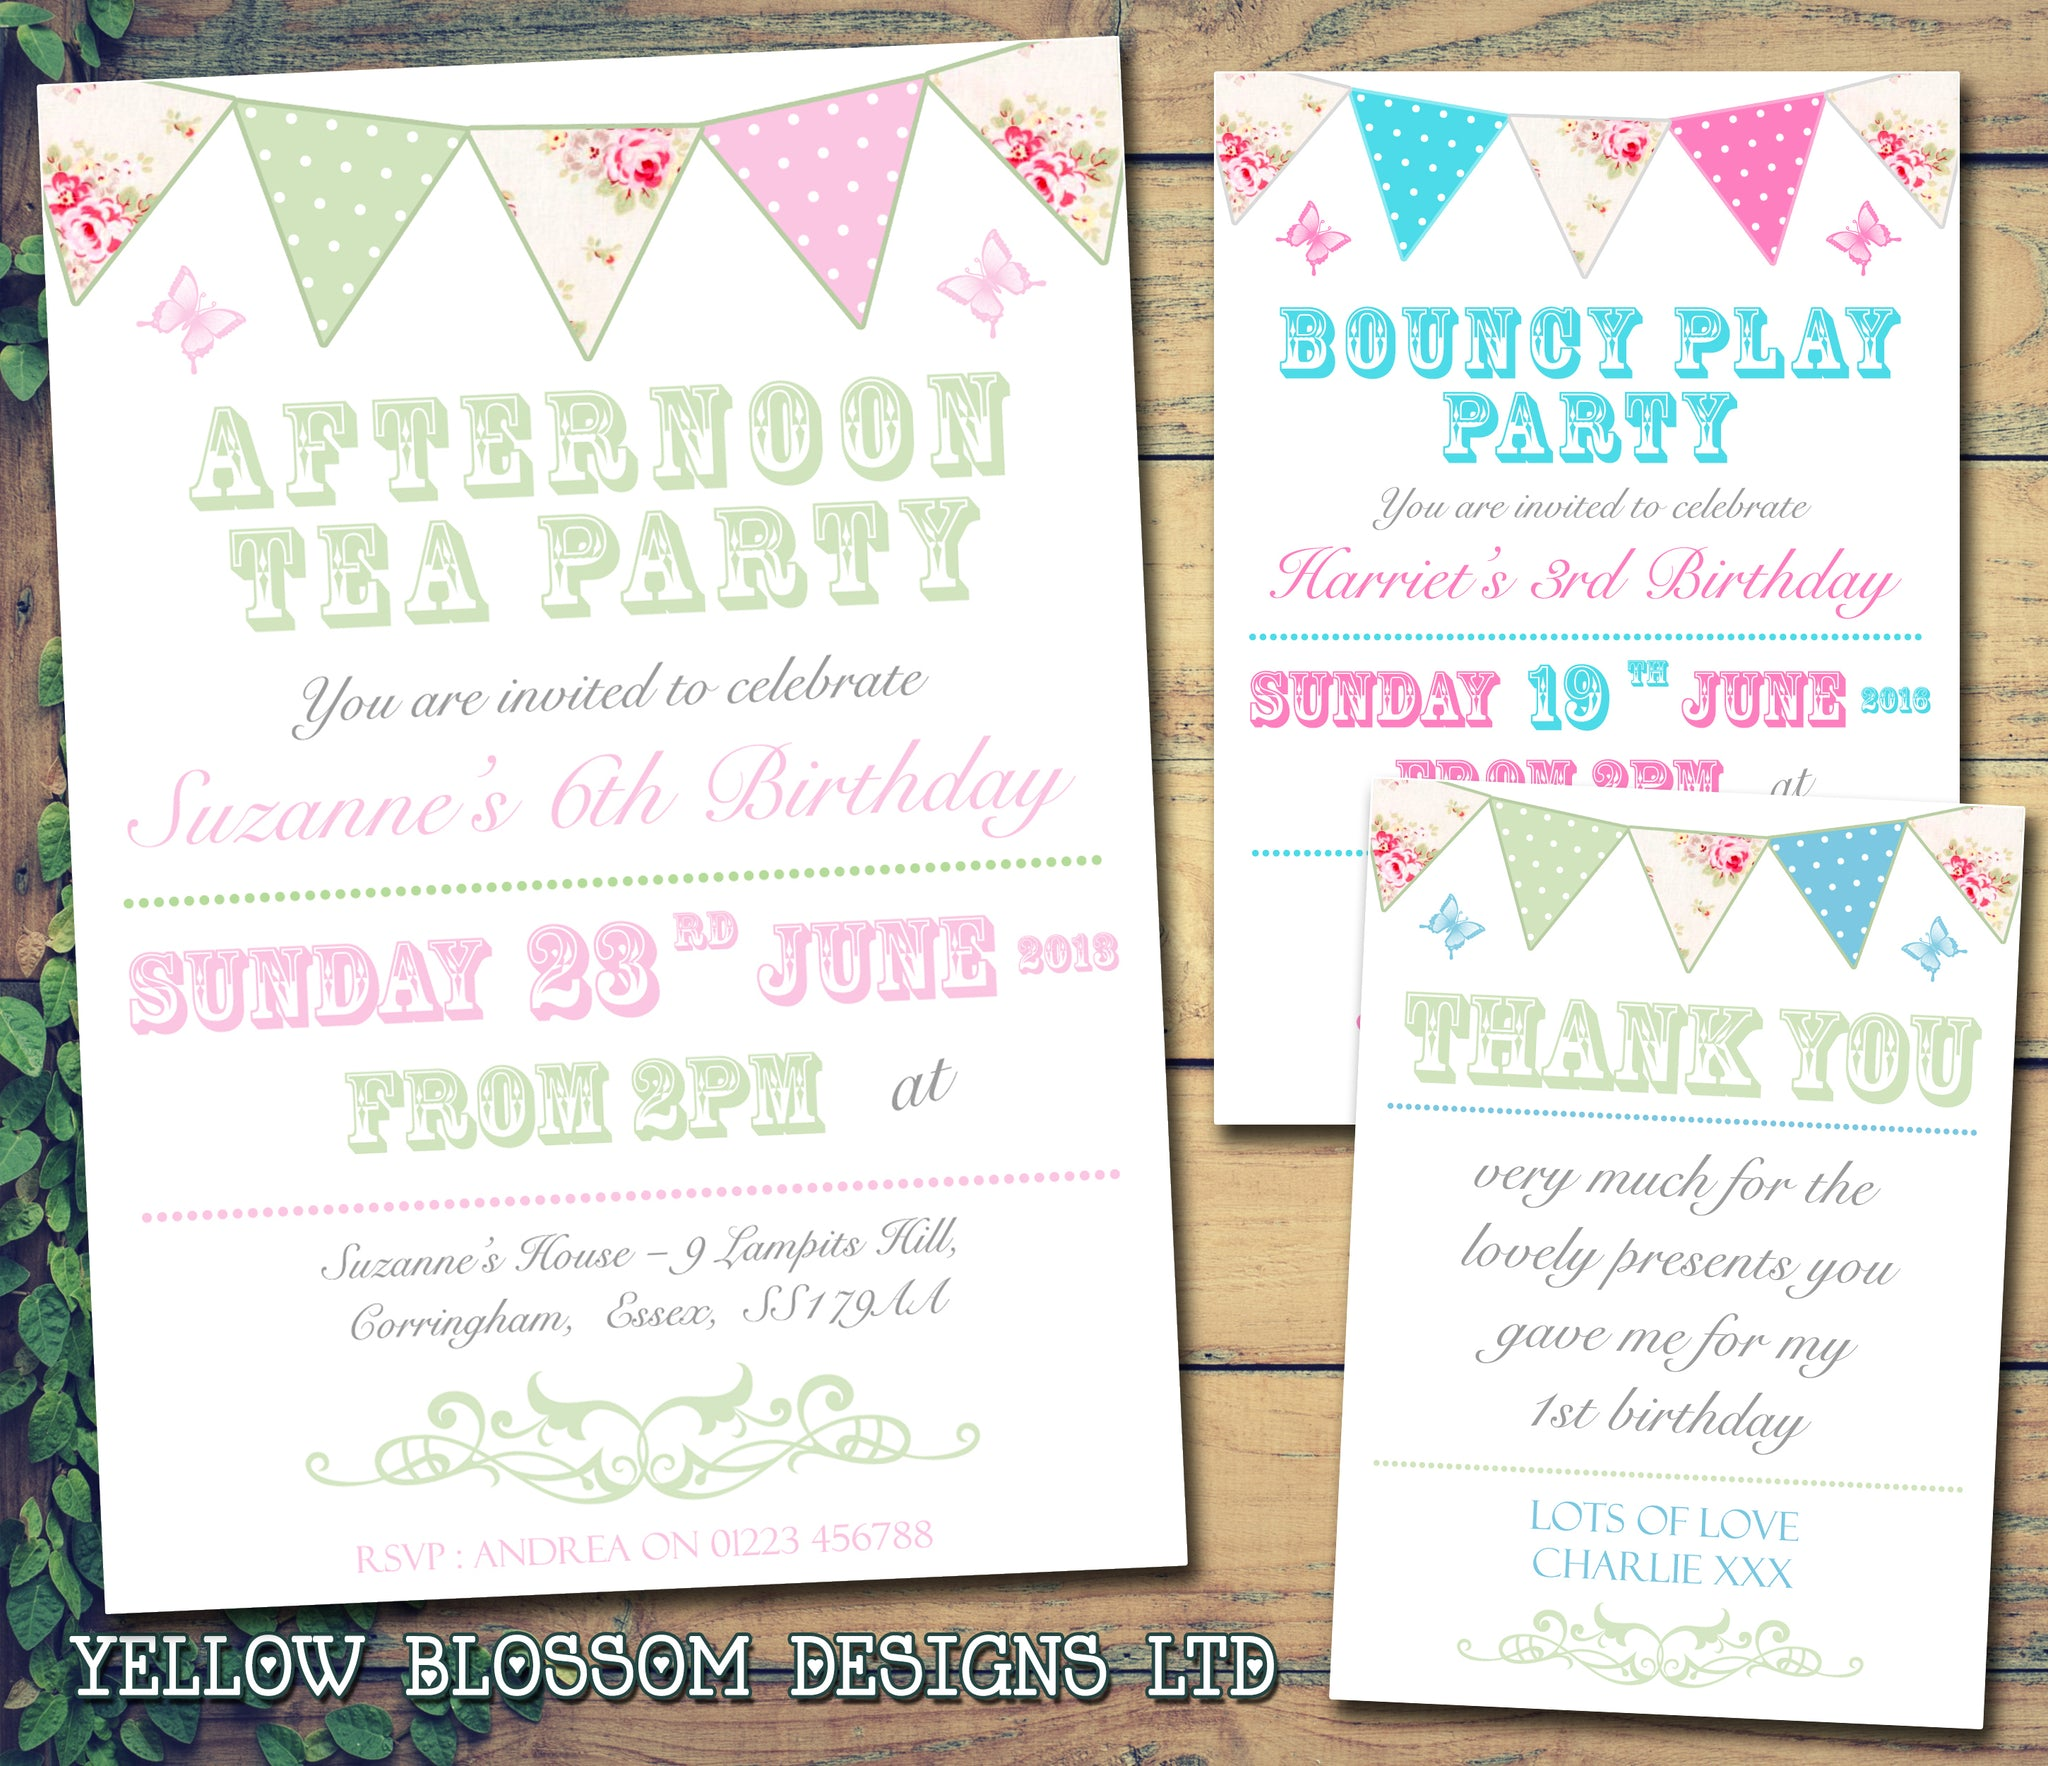 Shabby Chic Afternoon Tea Party Invitations